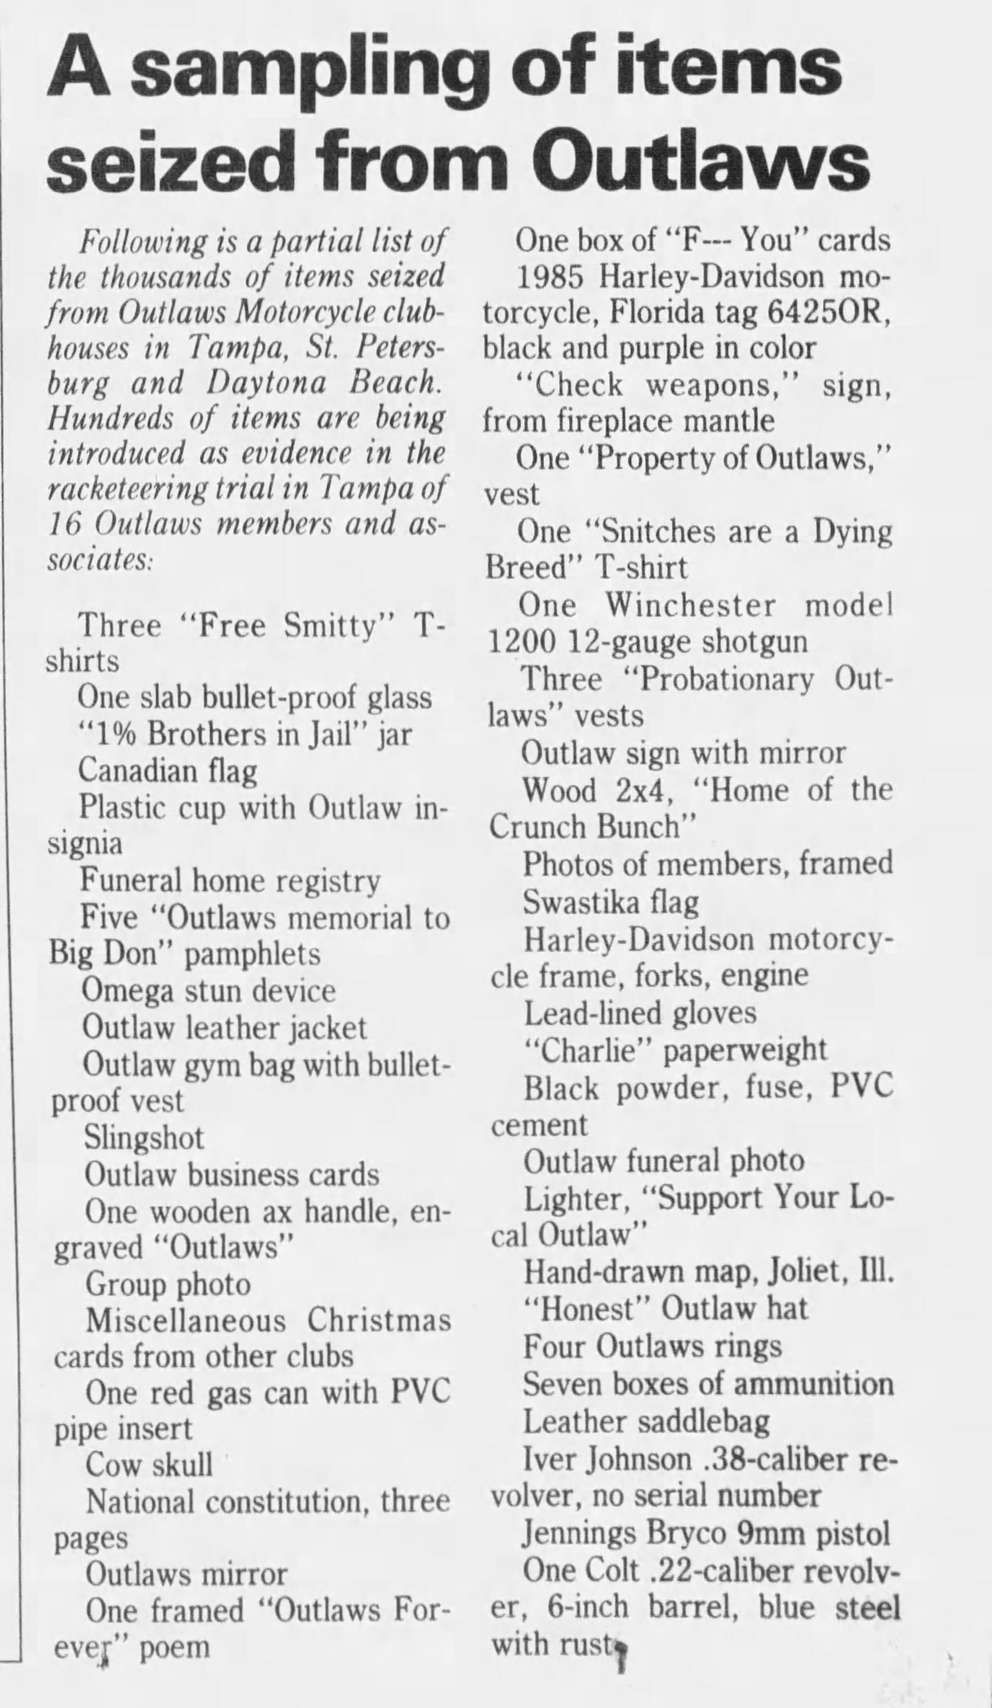 The St. Petersburg Times published a partial list of the items law enforcement took from three Outlaws clubhouses in the May 3, 1995 newspaper.